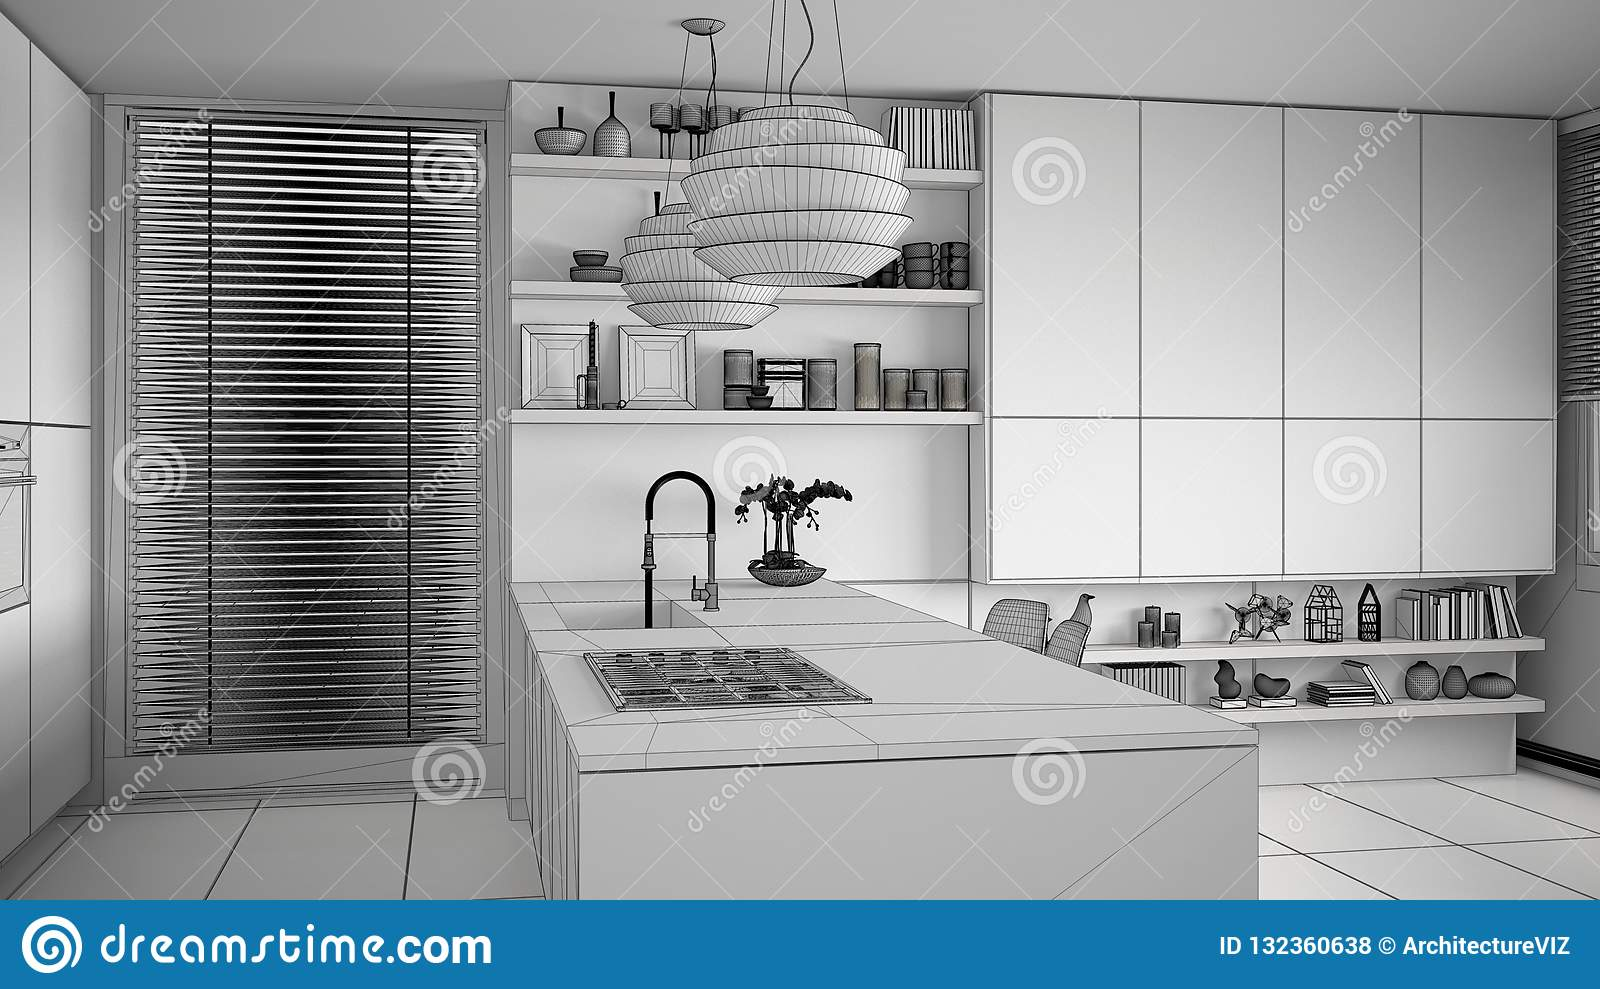 Unfinished Project Draft Of Modern Kitchen With Shelves And